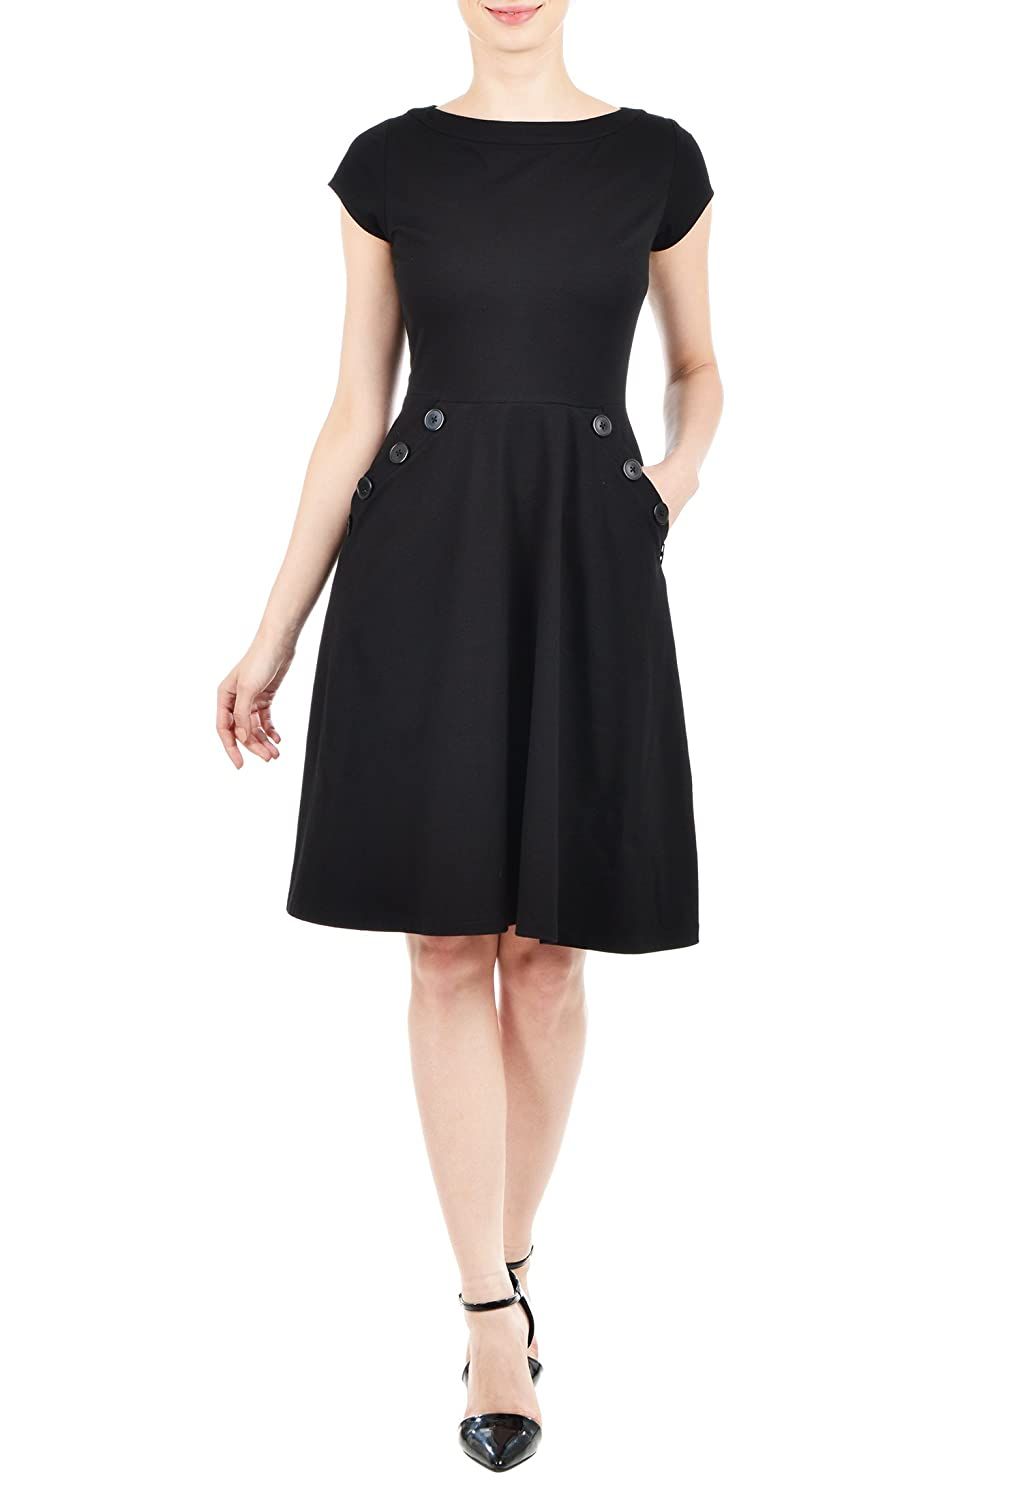 Plus Size Retro Dresses eShakti Womens Large button pocket knit dress $54.95 AT vintagedancer.com